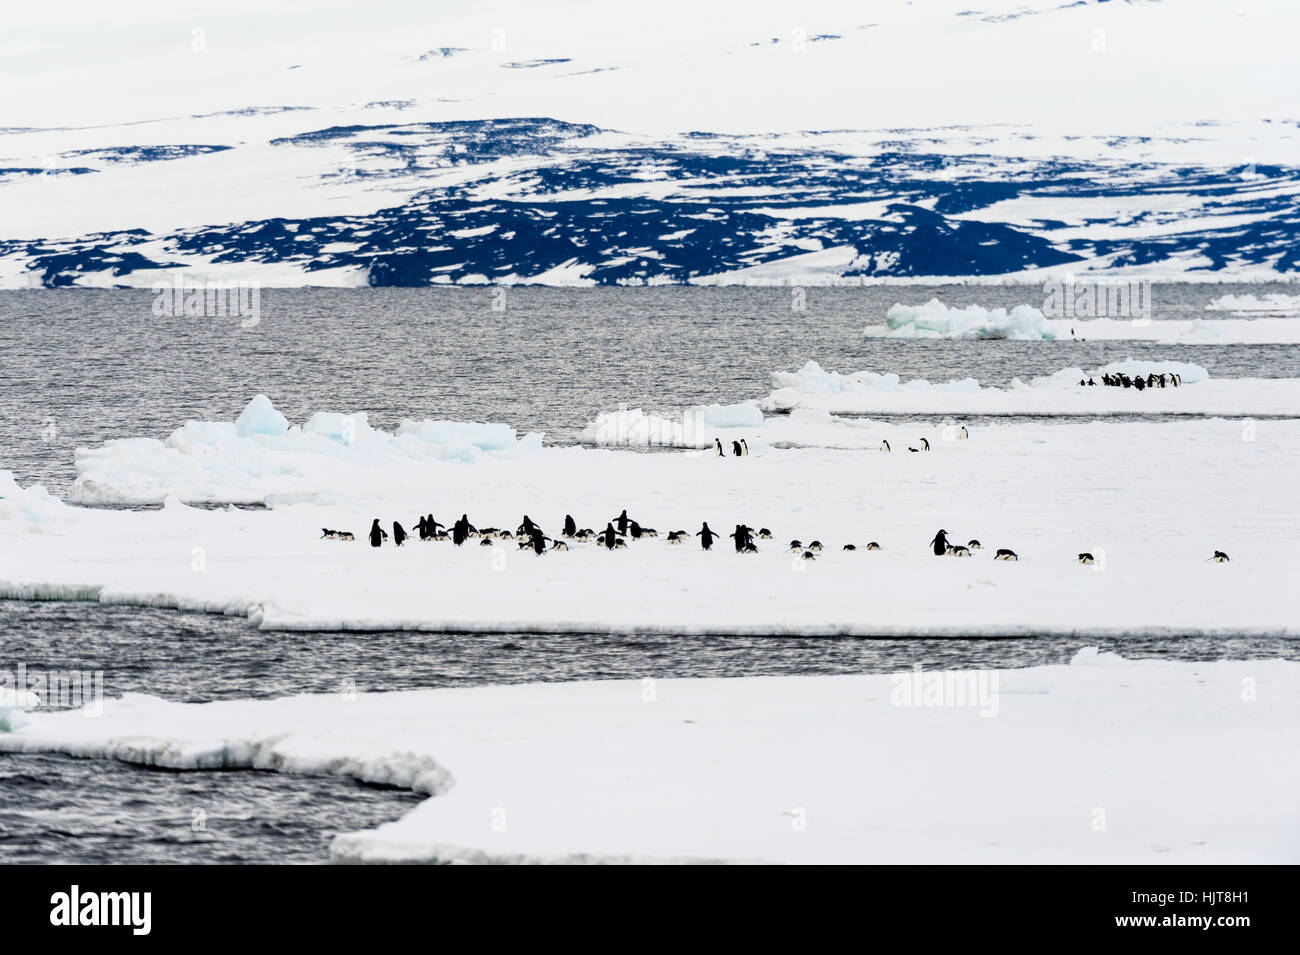 Emperor and Adelie Penguins congregate on the sea ice edge in Antarctica. - Stock Image